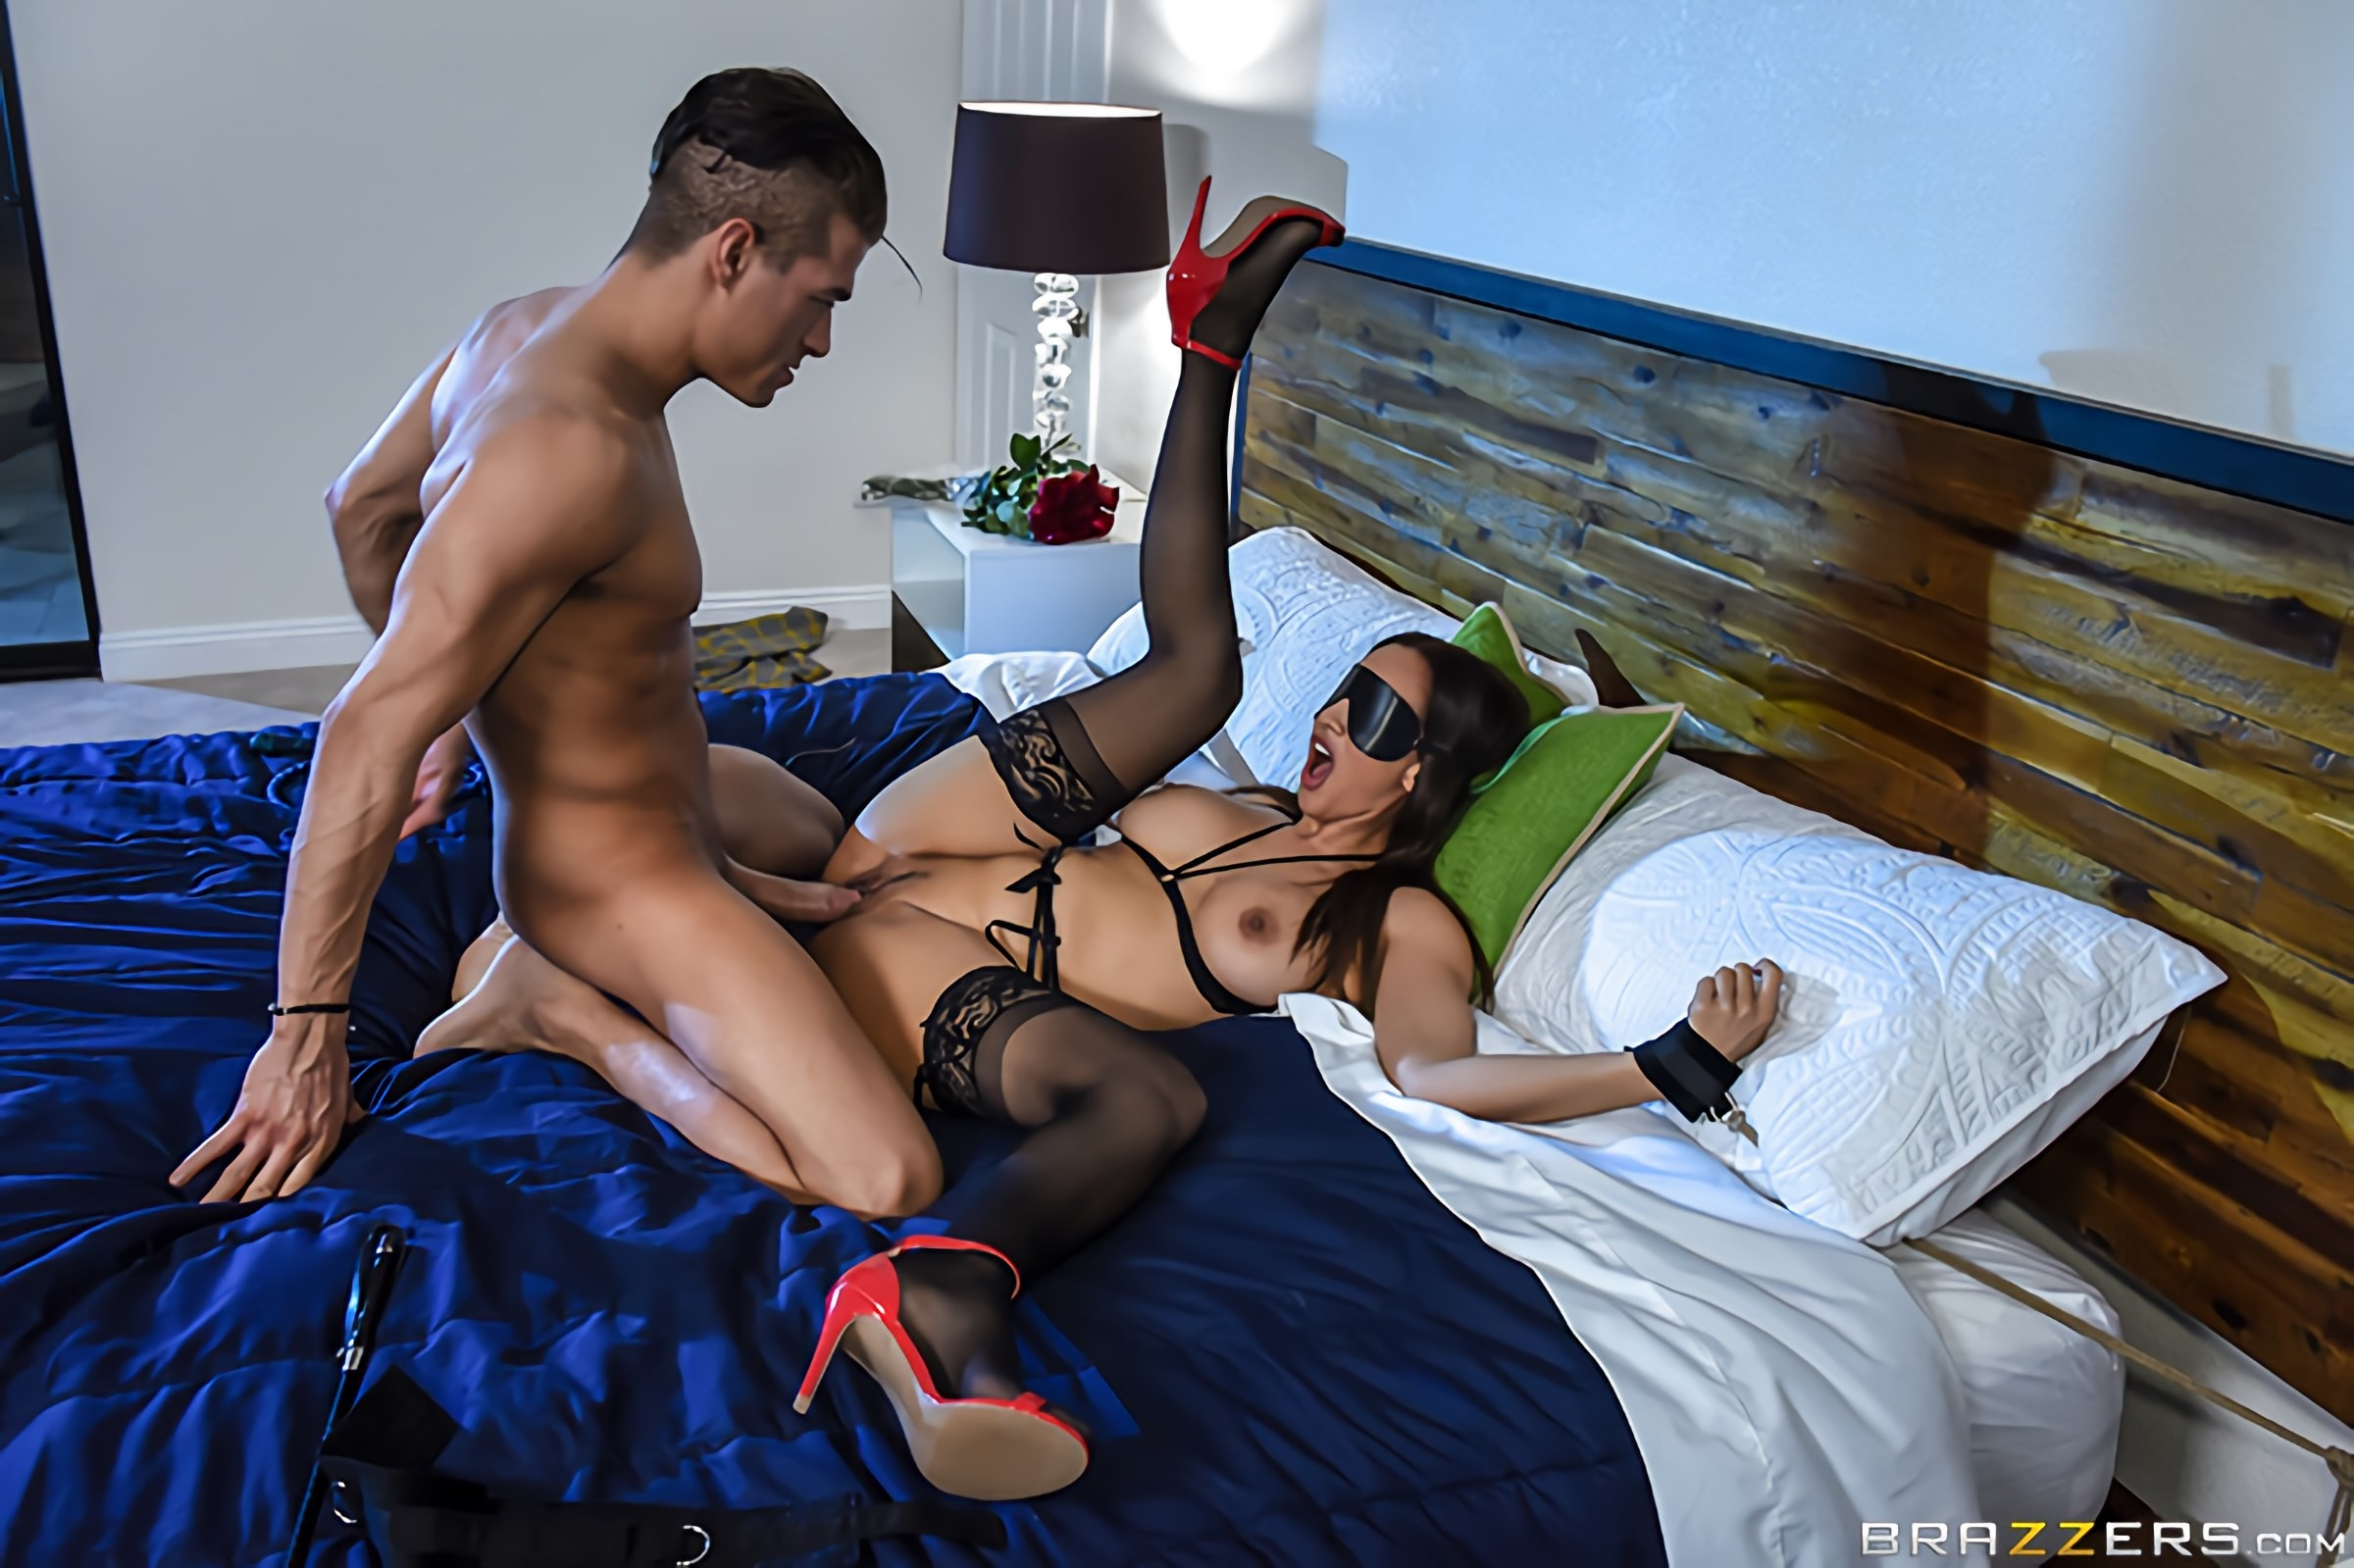 Brazzers 'Her Husband's Whipped' starring Isis Love (photo 4)